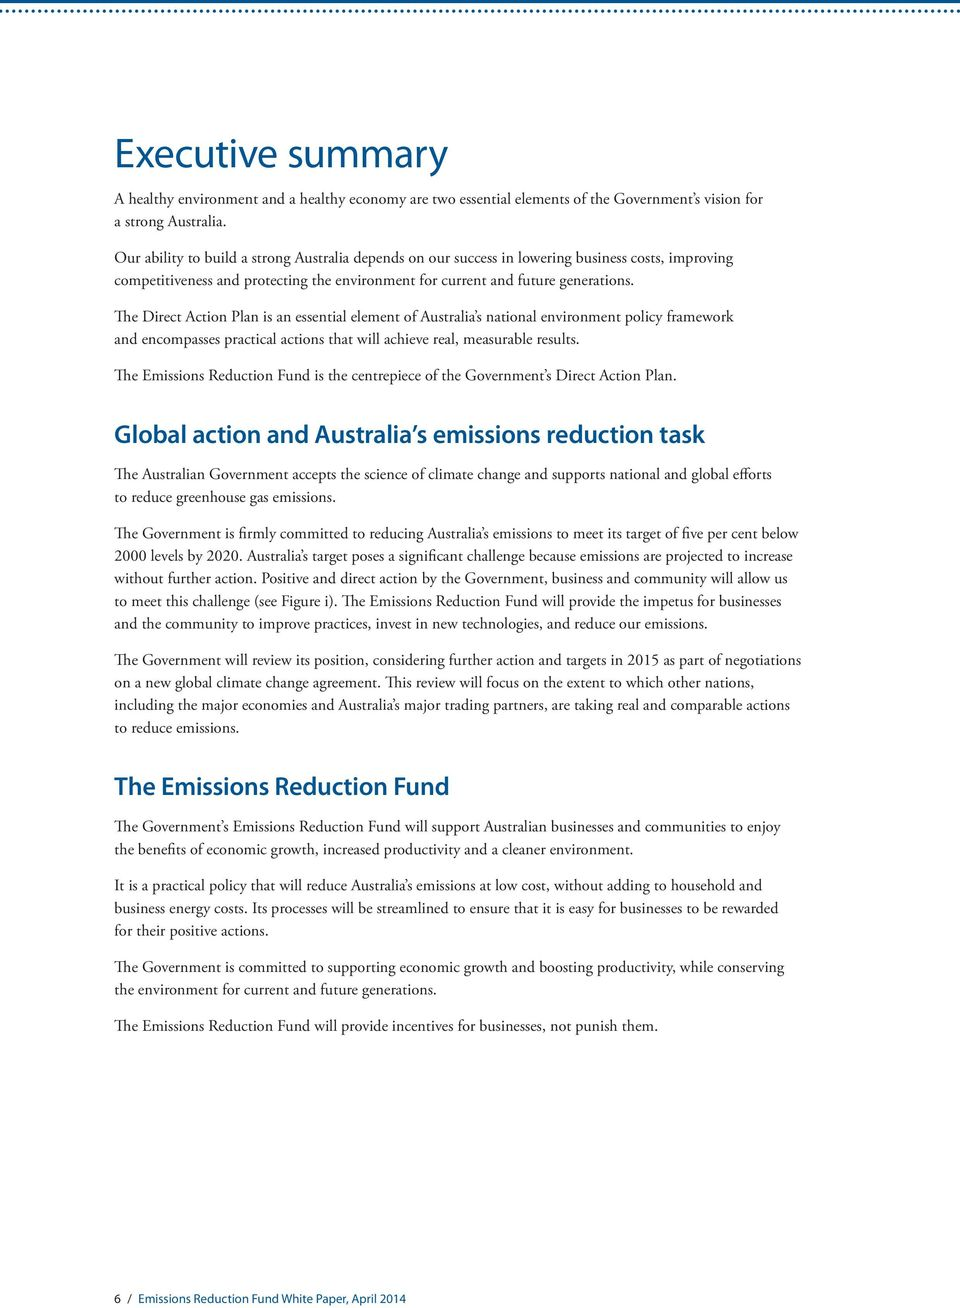 The Direct Action Plan is an essential element of Australia s national environment policy framework and encompasses practical actions that will achieve real, measurable results.